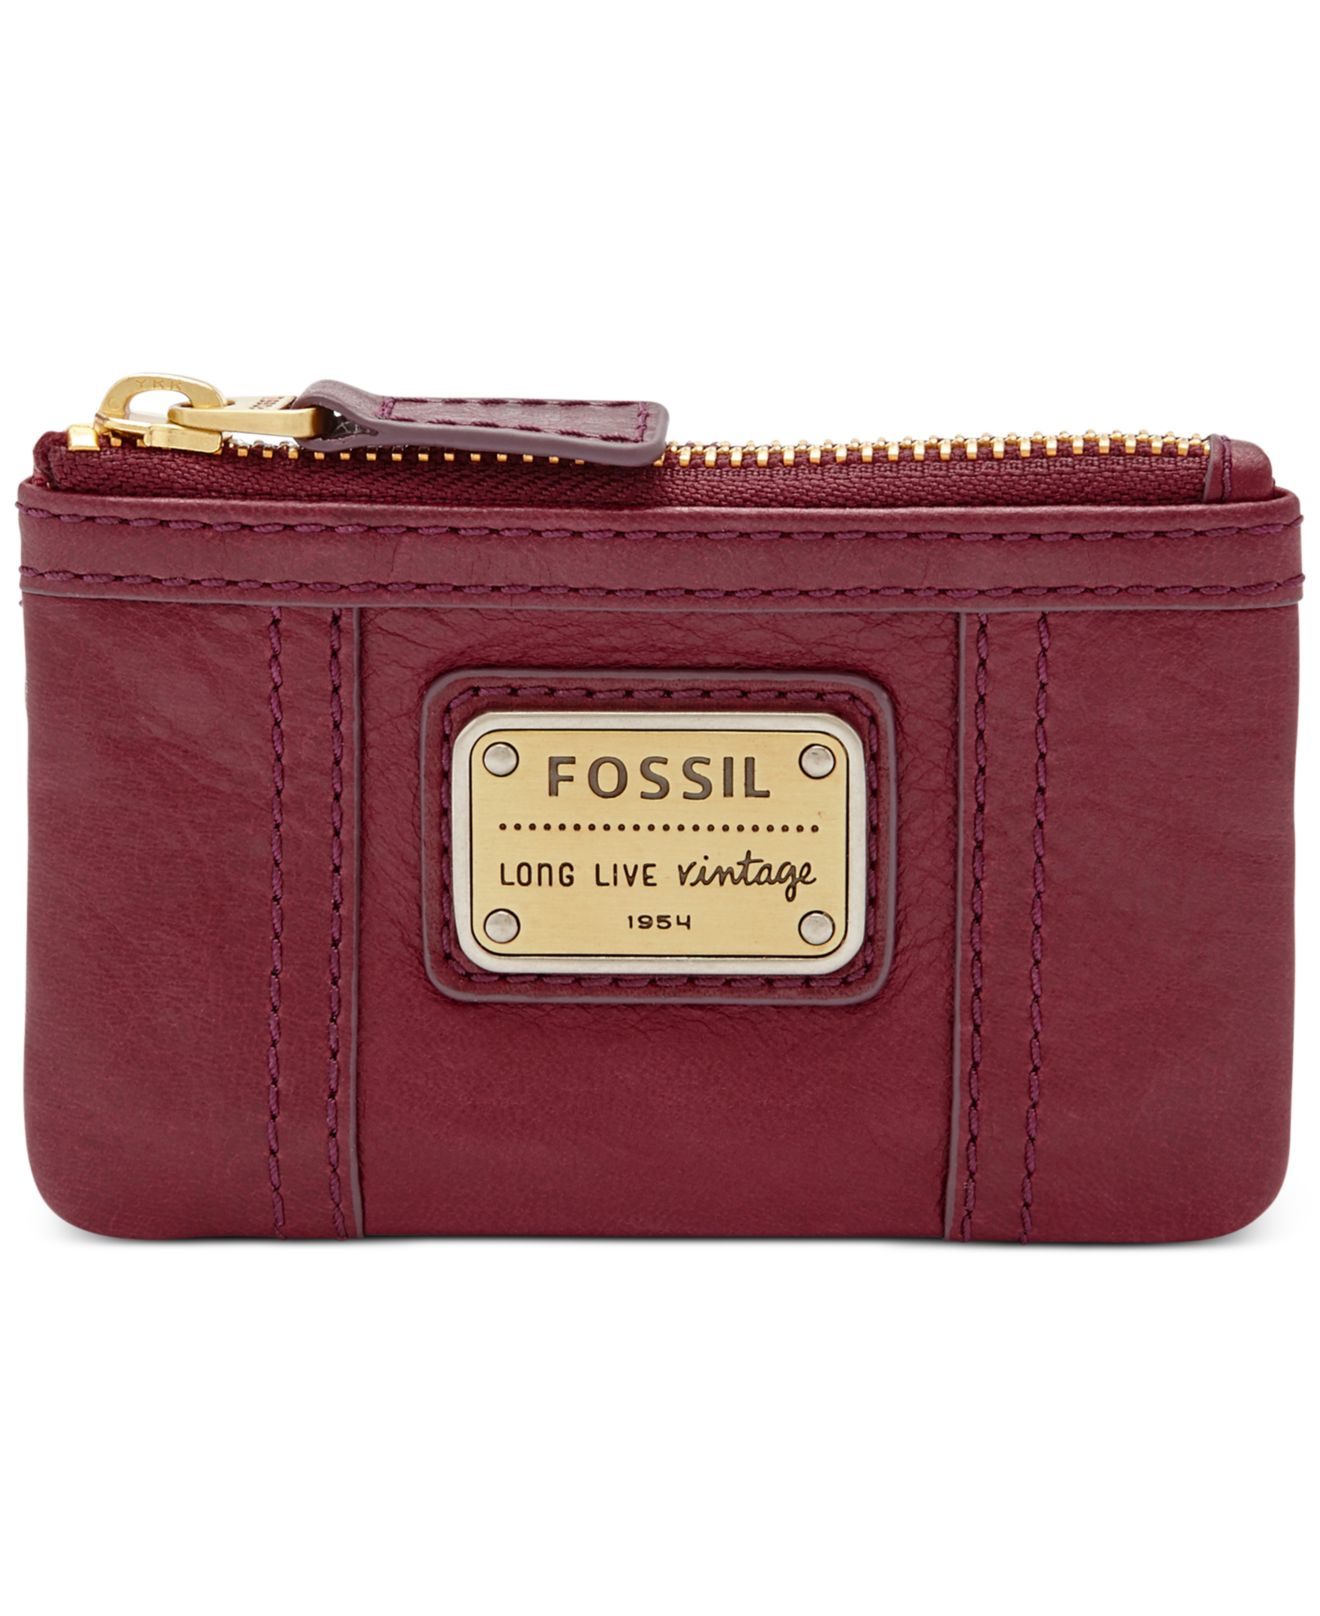 a99b7f118788 Fossil emory zip coin case - Dentacoin subreddit movies